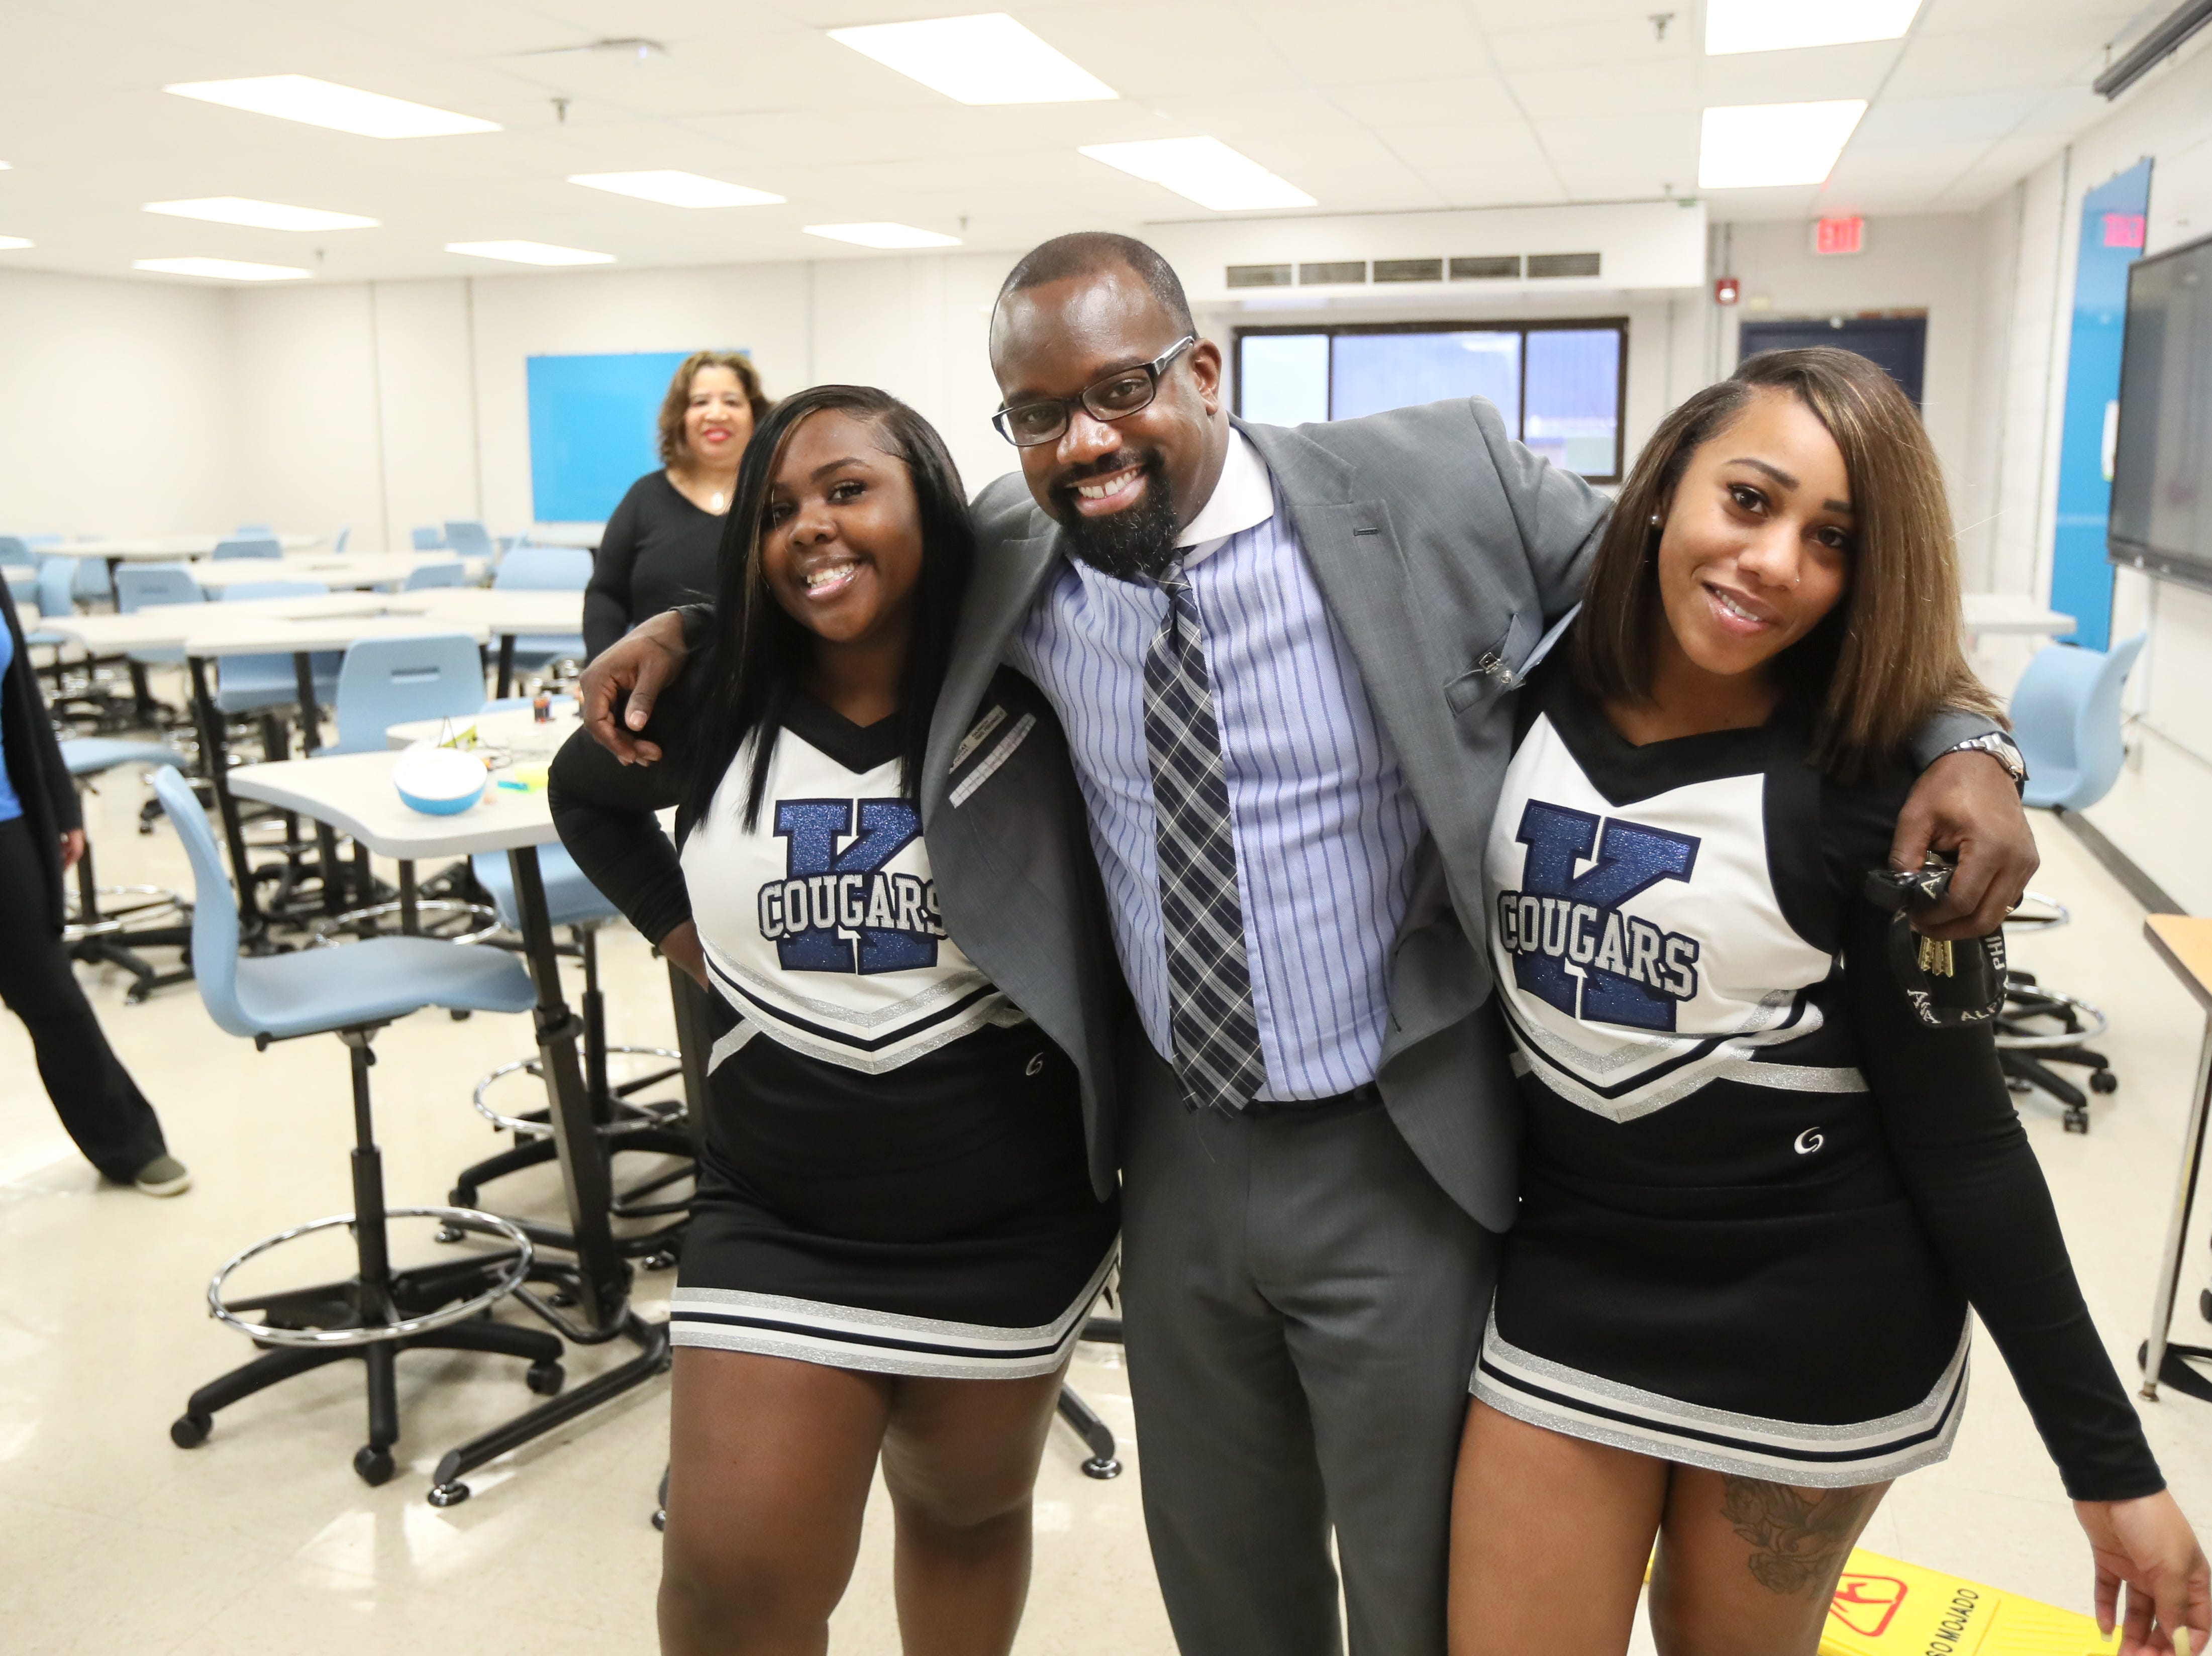 Kirby High School senior Alexius Smith, from left, Principal Steevon Hunter and senior Lakeisha Scott pose for a photo as the school opens its doors for a tour the building's upgrades Friday. The school is planning to officially reopen Monday, January 7, 2019 after months of being closed due to a rodent infestation.